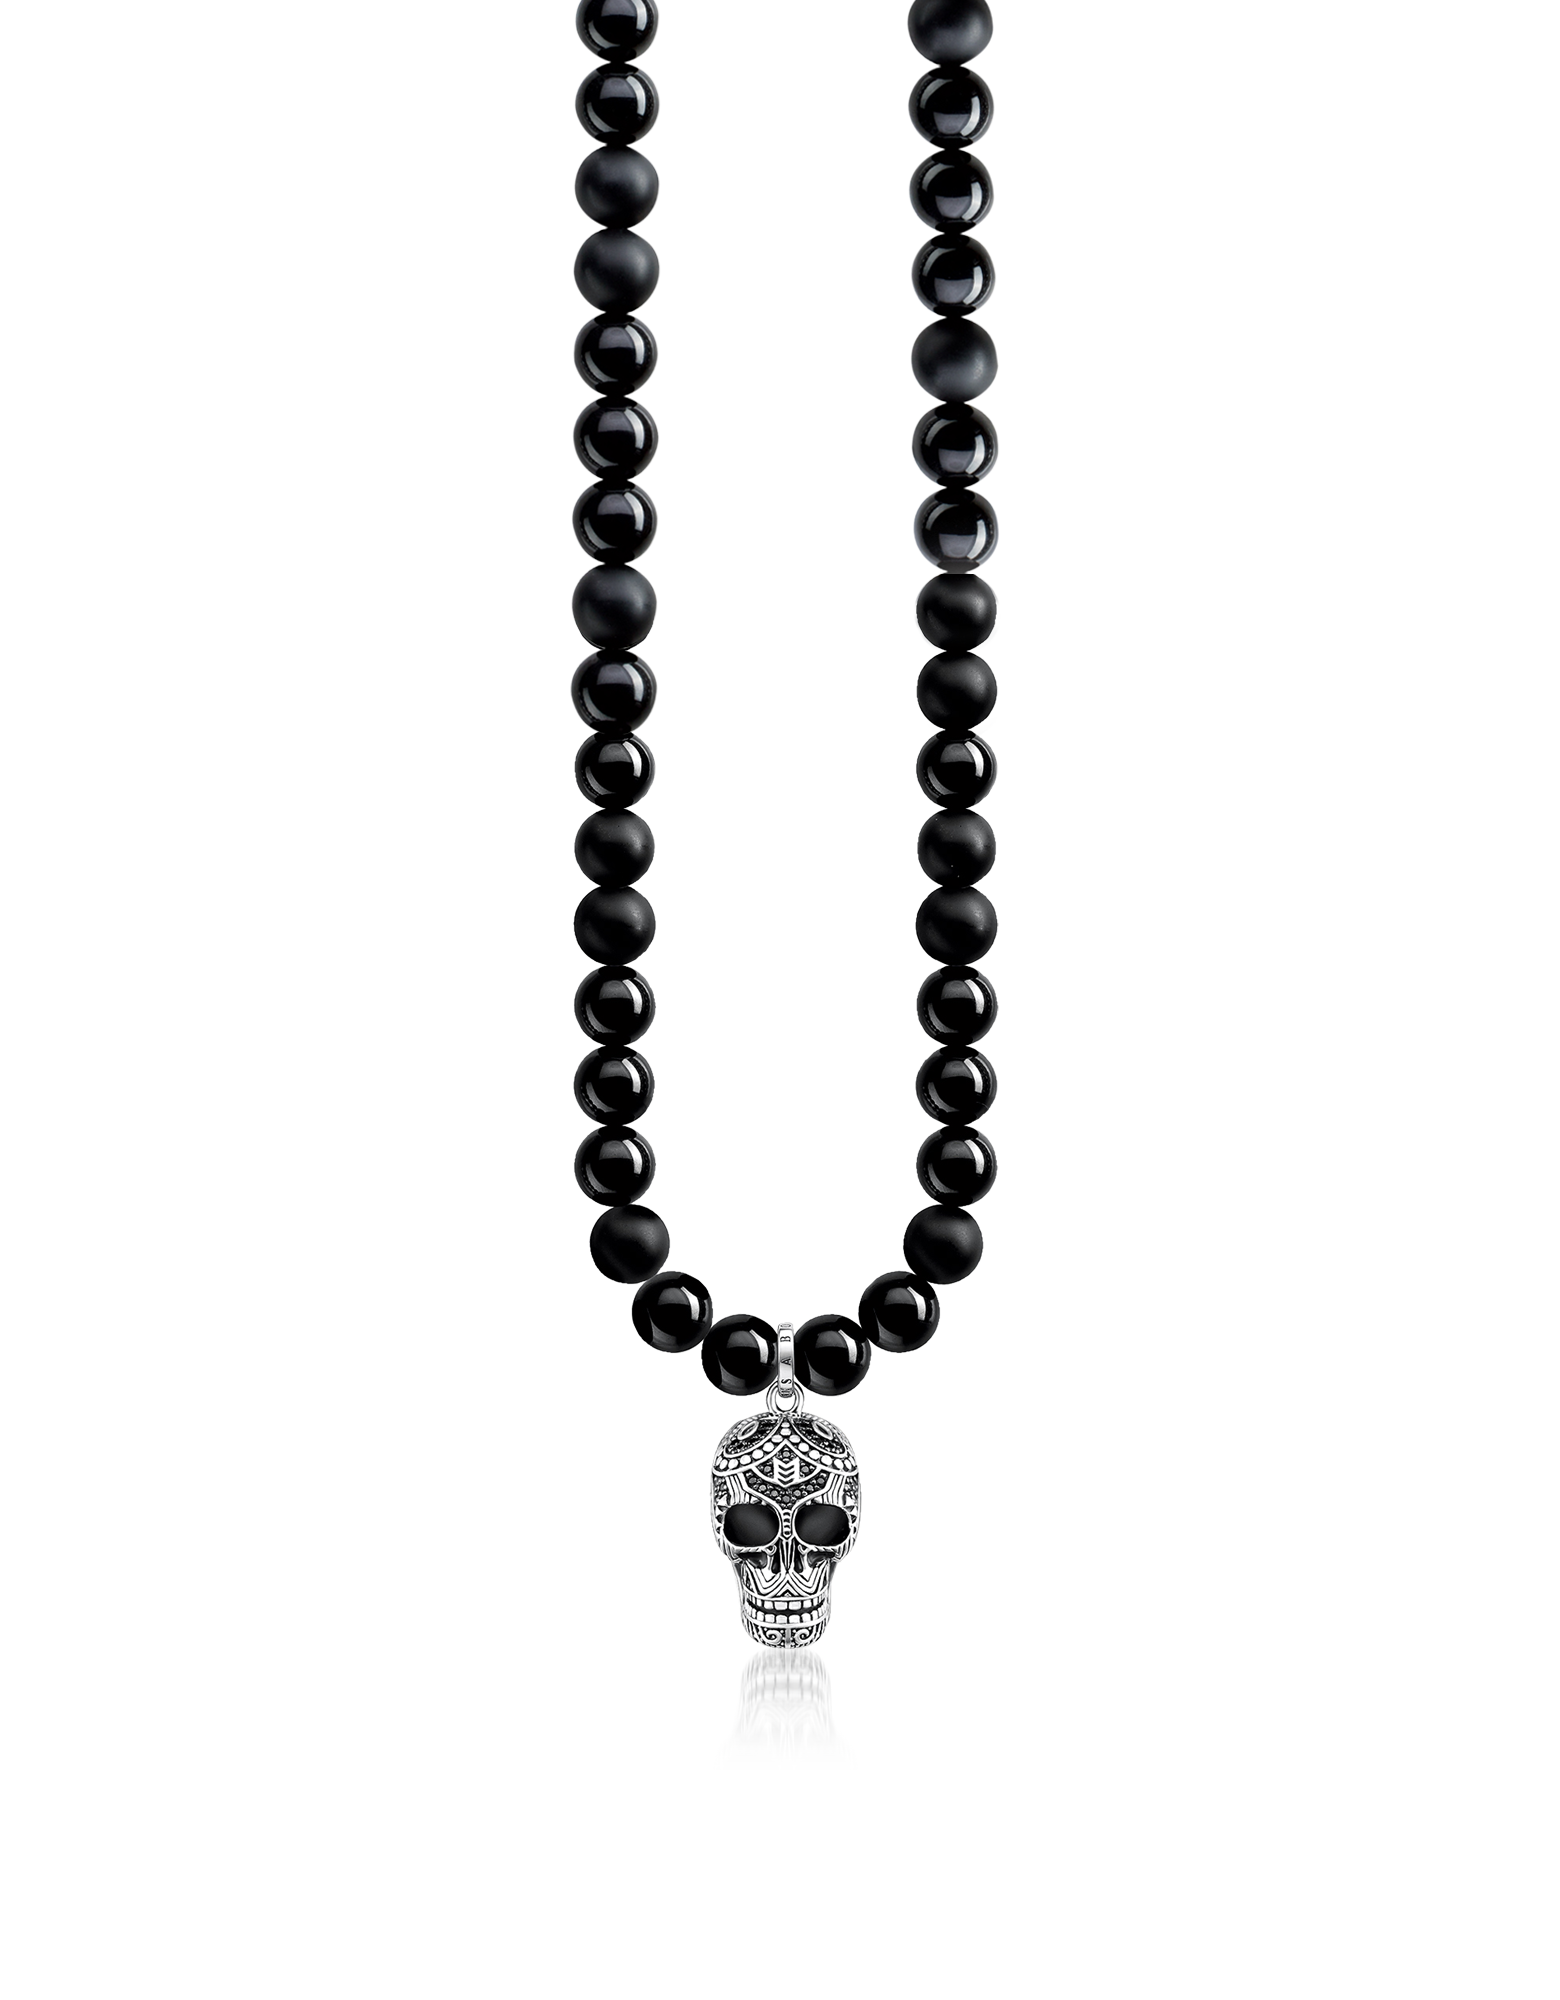 Image of Blackened 925 Sterling Silver & Obsidian Beads Power Necklace Maori Skull Necklace w/Zirconia Pave